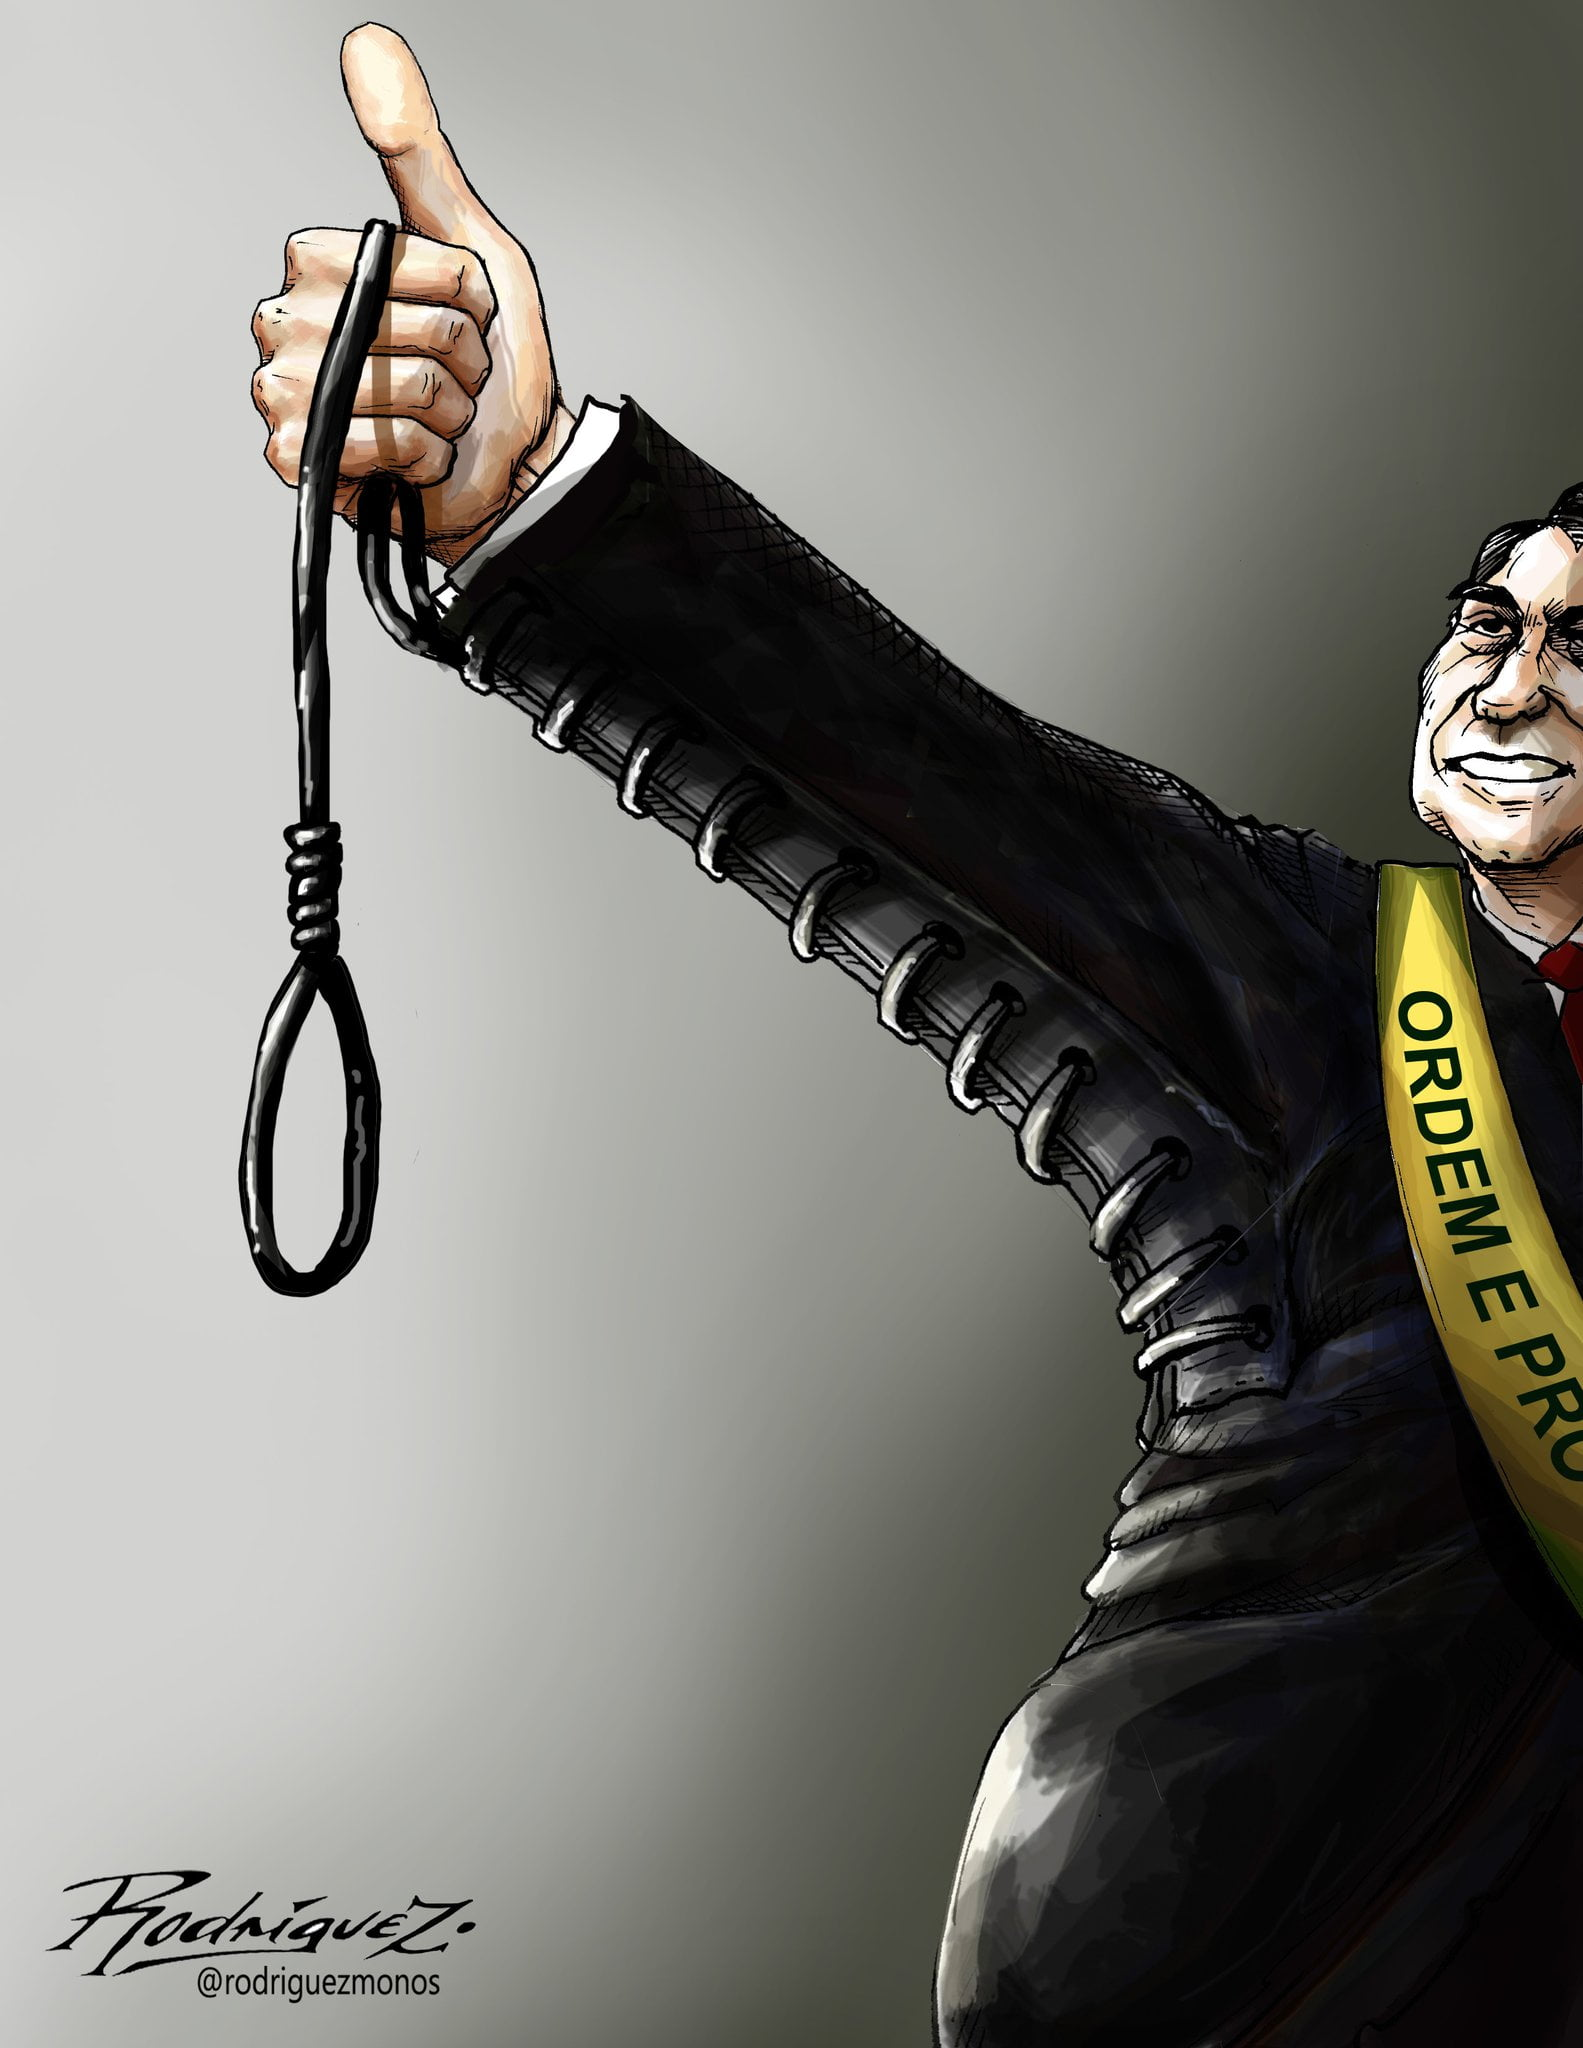 Brazilian Elections, Editorial Cartoon by Antonio Rodriguez Garcia, from Mexico City, Mexico